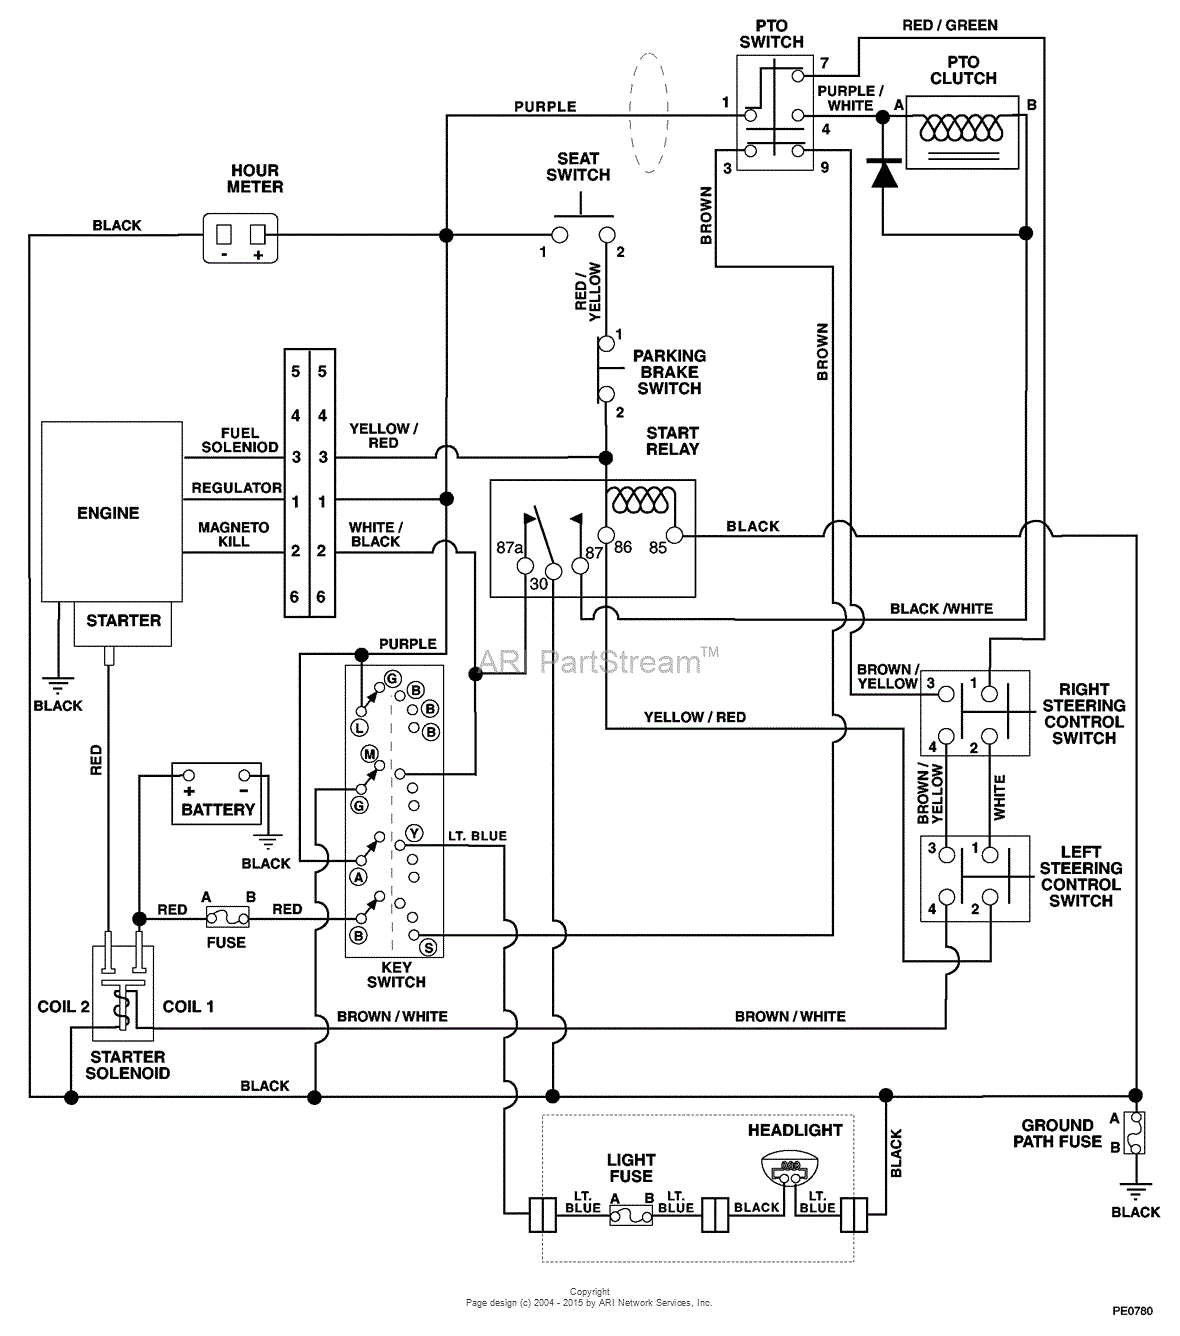 salzer switches wiring diagram electrical wiring diagram symbols 4 wire diagram reversing switch salzer drum switch